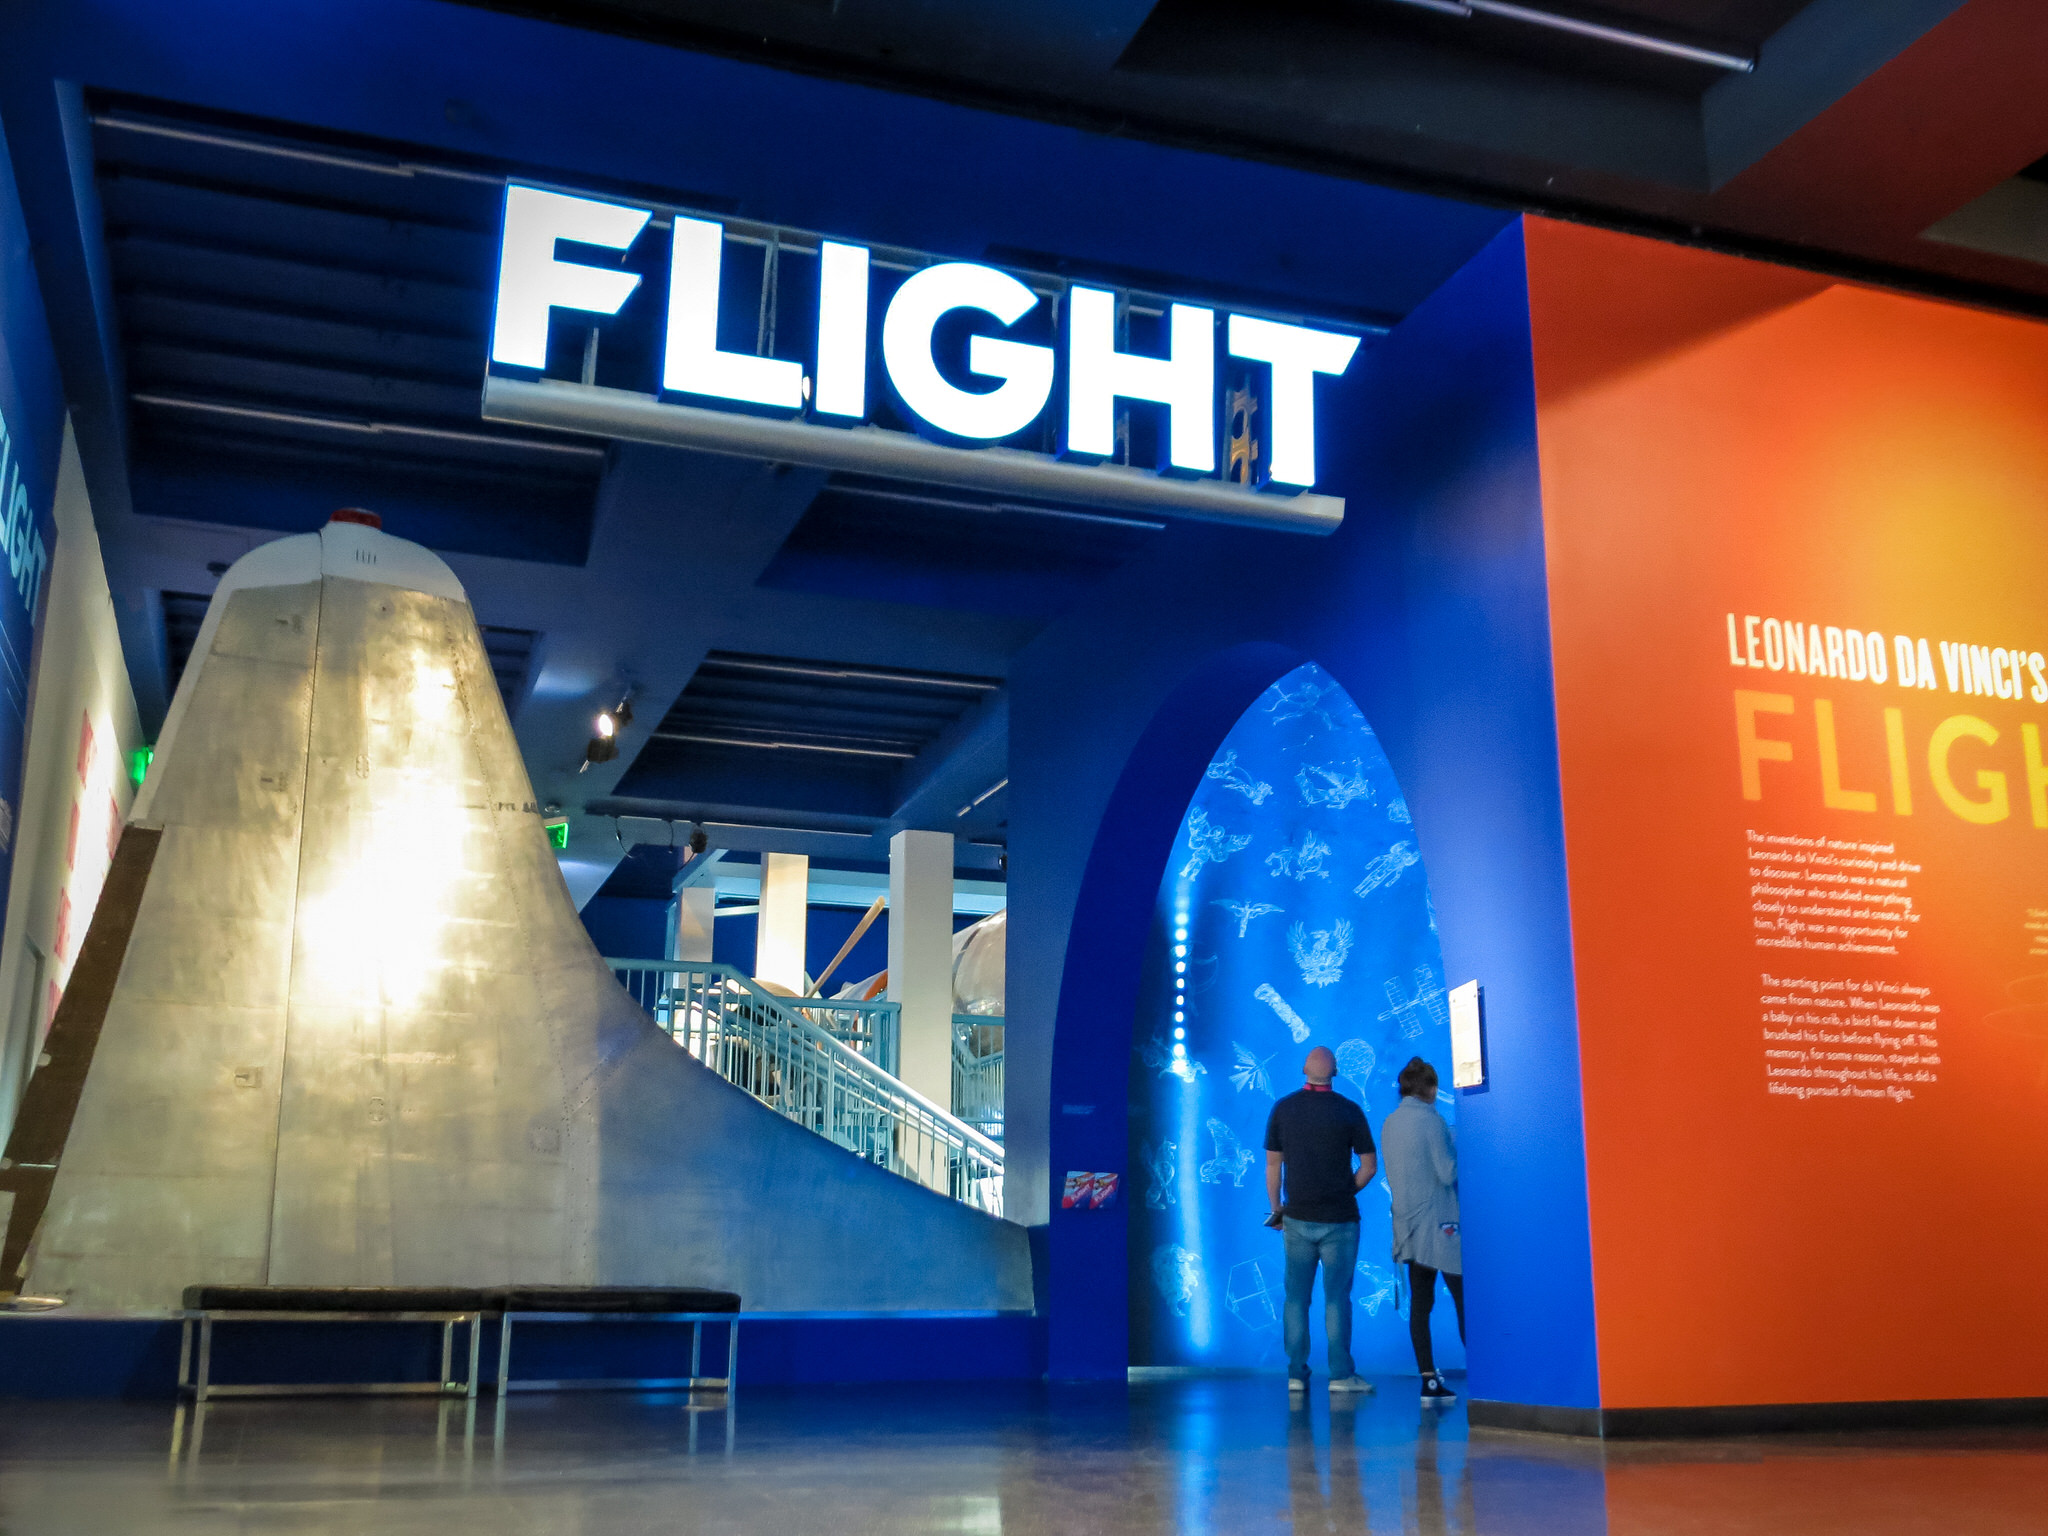 After the massive effort of the retrofitting, movement and installation, FLIGHT was ready to open. The sign and entry vestibule lead visitors into exhibit.